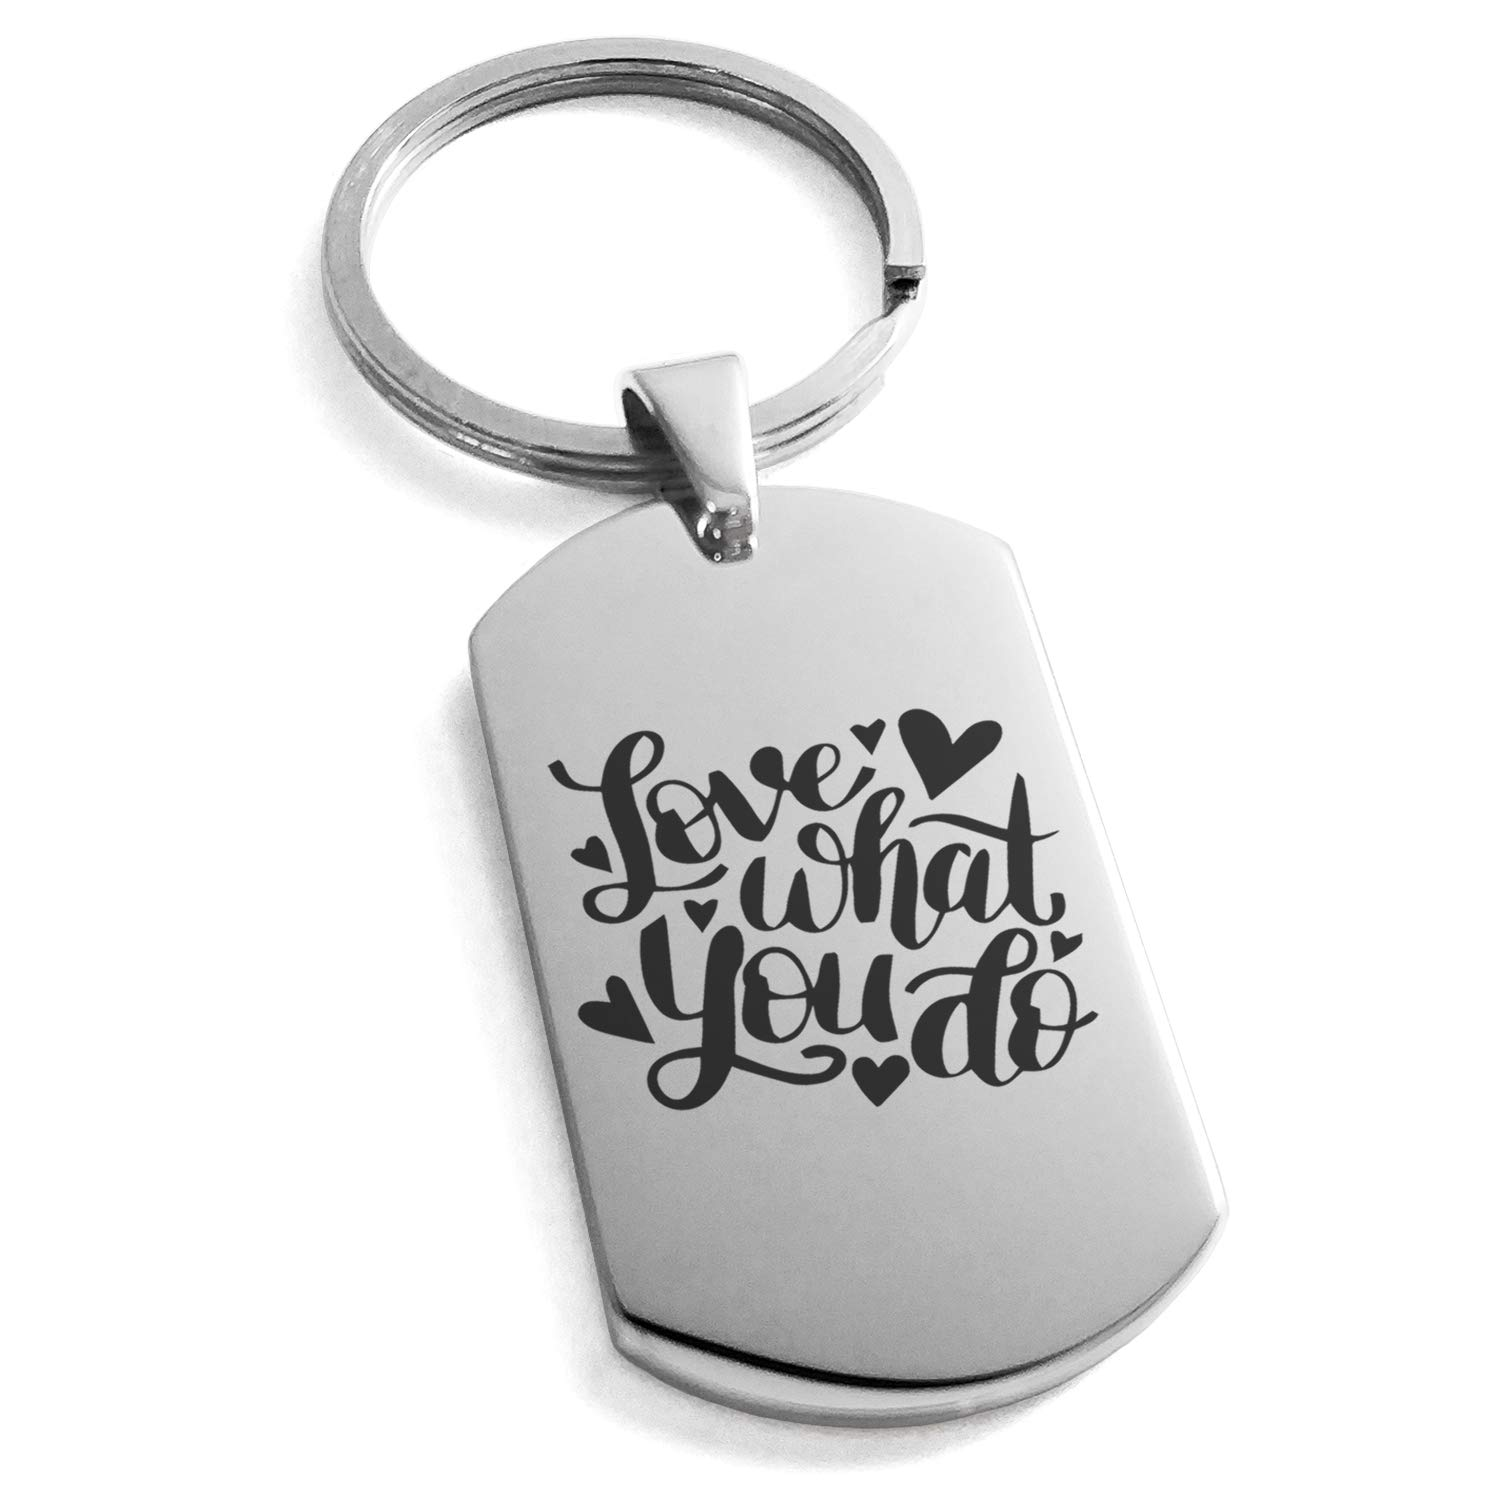 Tioneer Stainless Steel Love What You Do Engraved Dog Tag Keychain Keyring